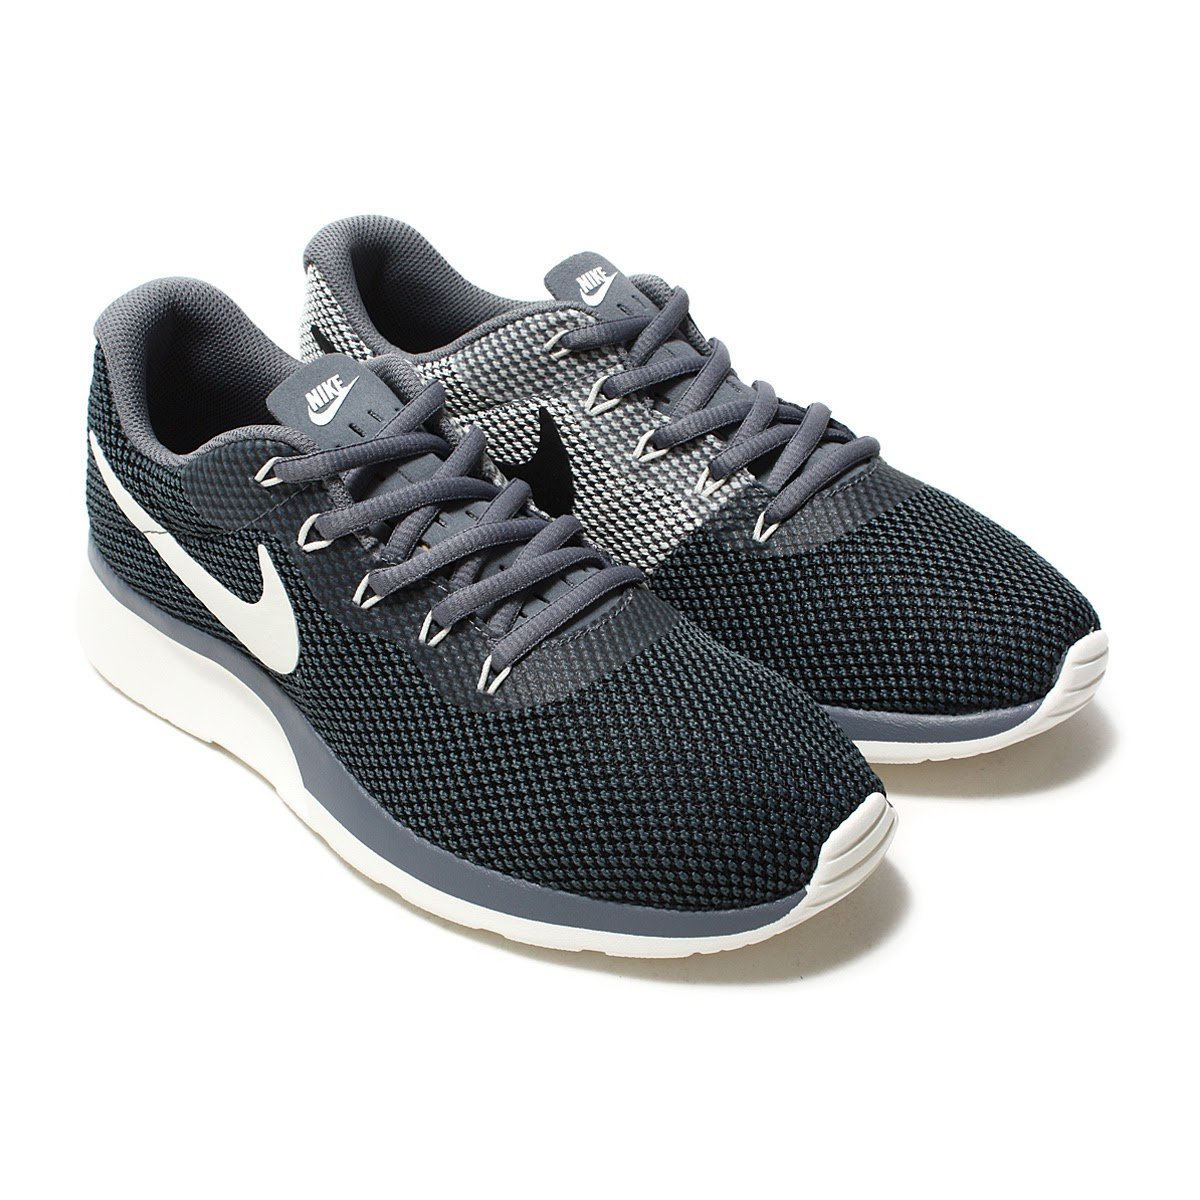 716f9d667cc76 NIKE WMNS TANJUN RACER (Nike women tongue Jun racer) COOL GREY/SAIL- ...